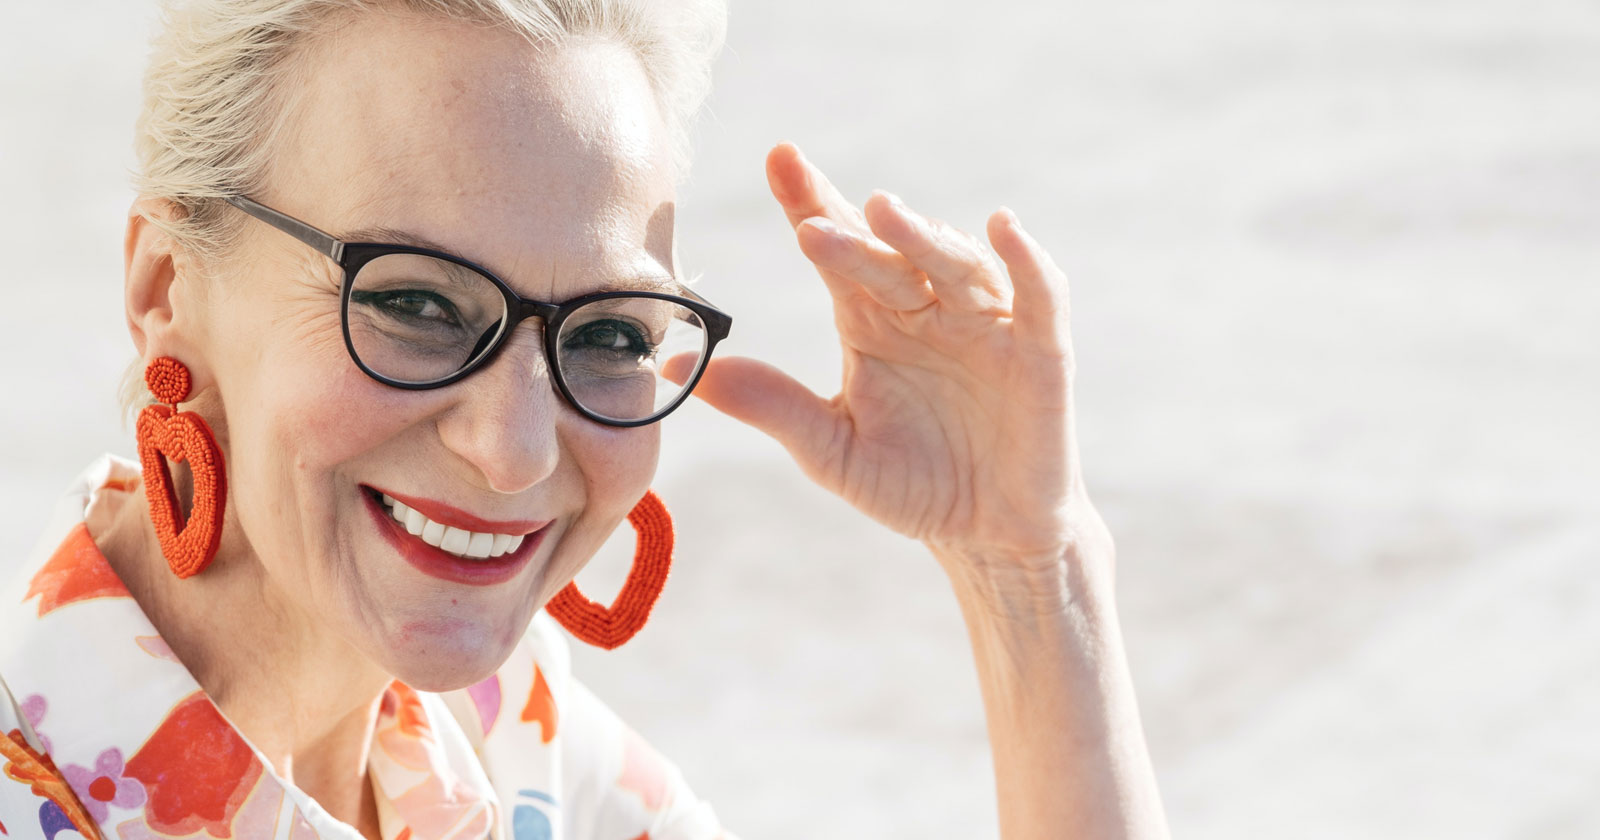 How Do You Choose the Best Eyeglass Sizes